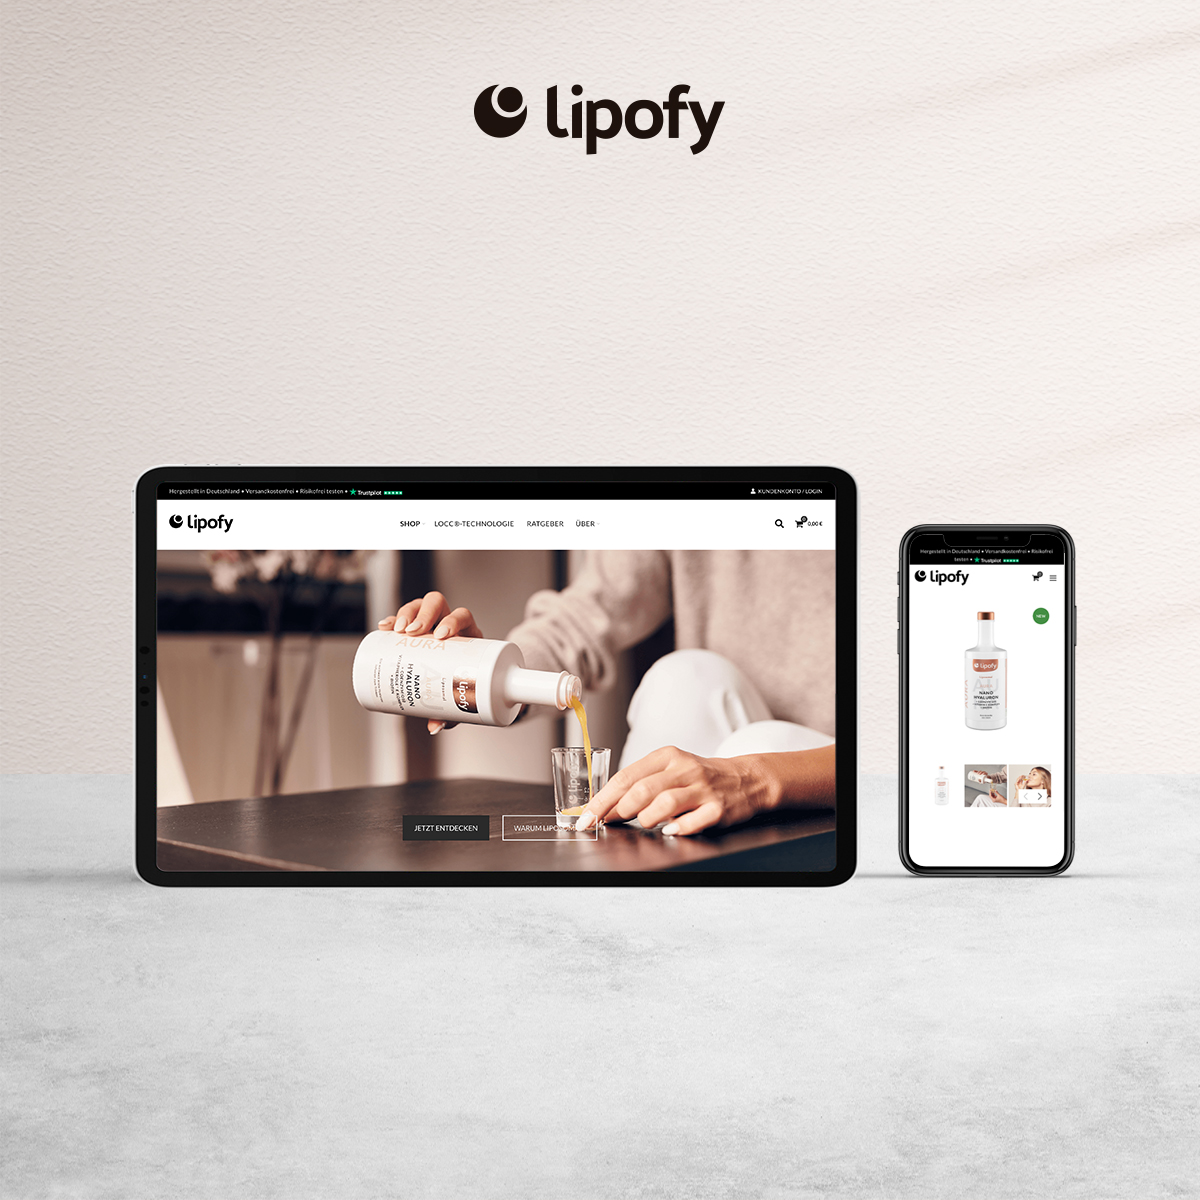 Mockup ipad_iphone_Lipofy_FORMM